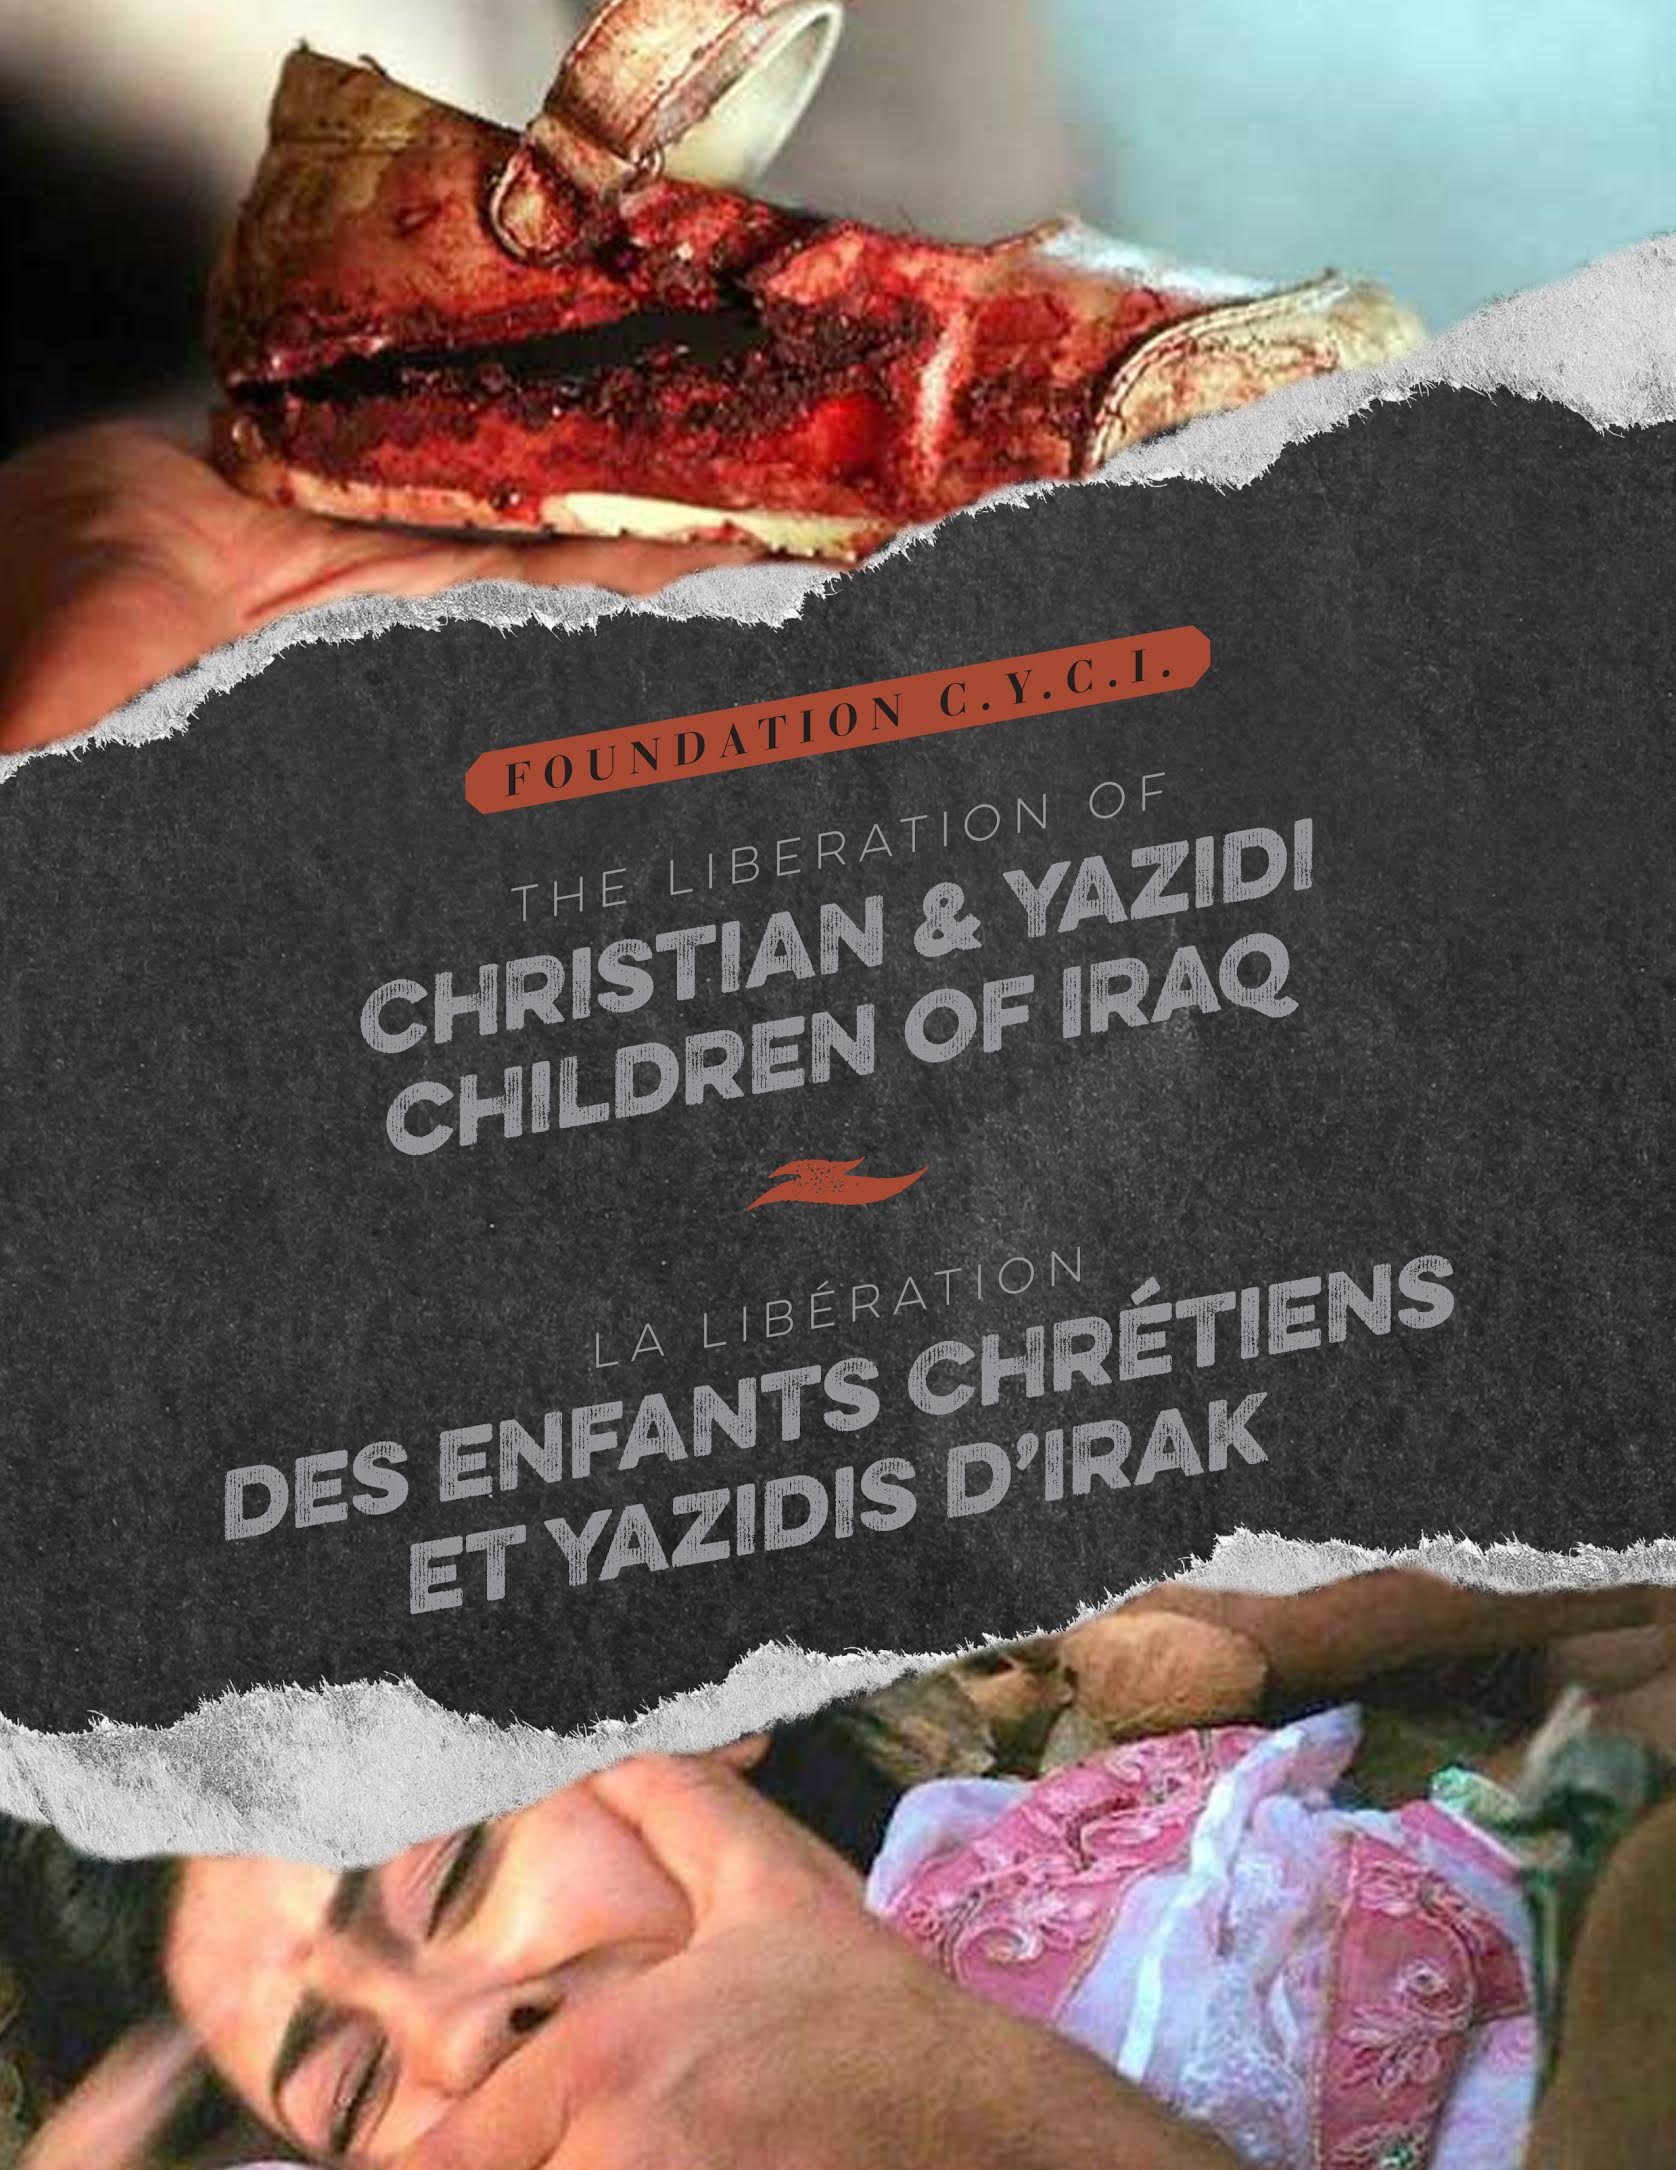 When Conscience and Action Meet: Saving Yazidi Girls